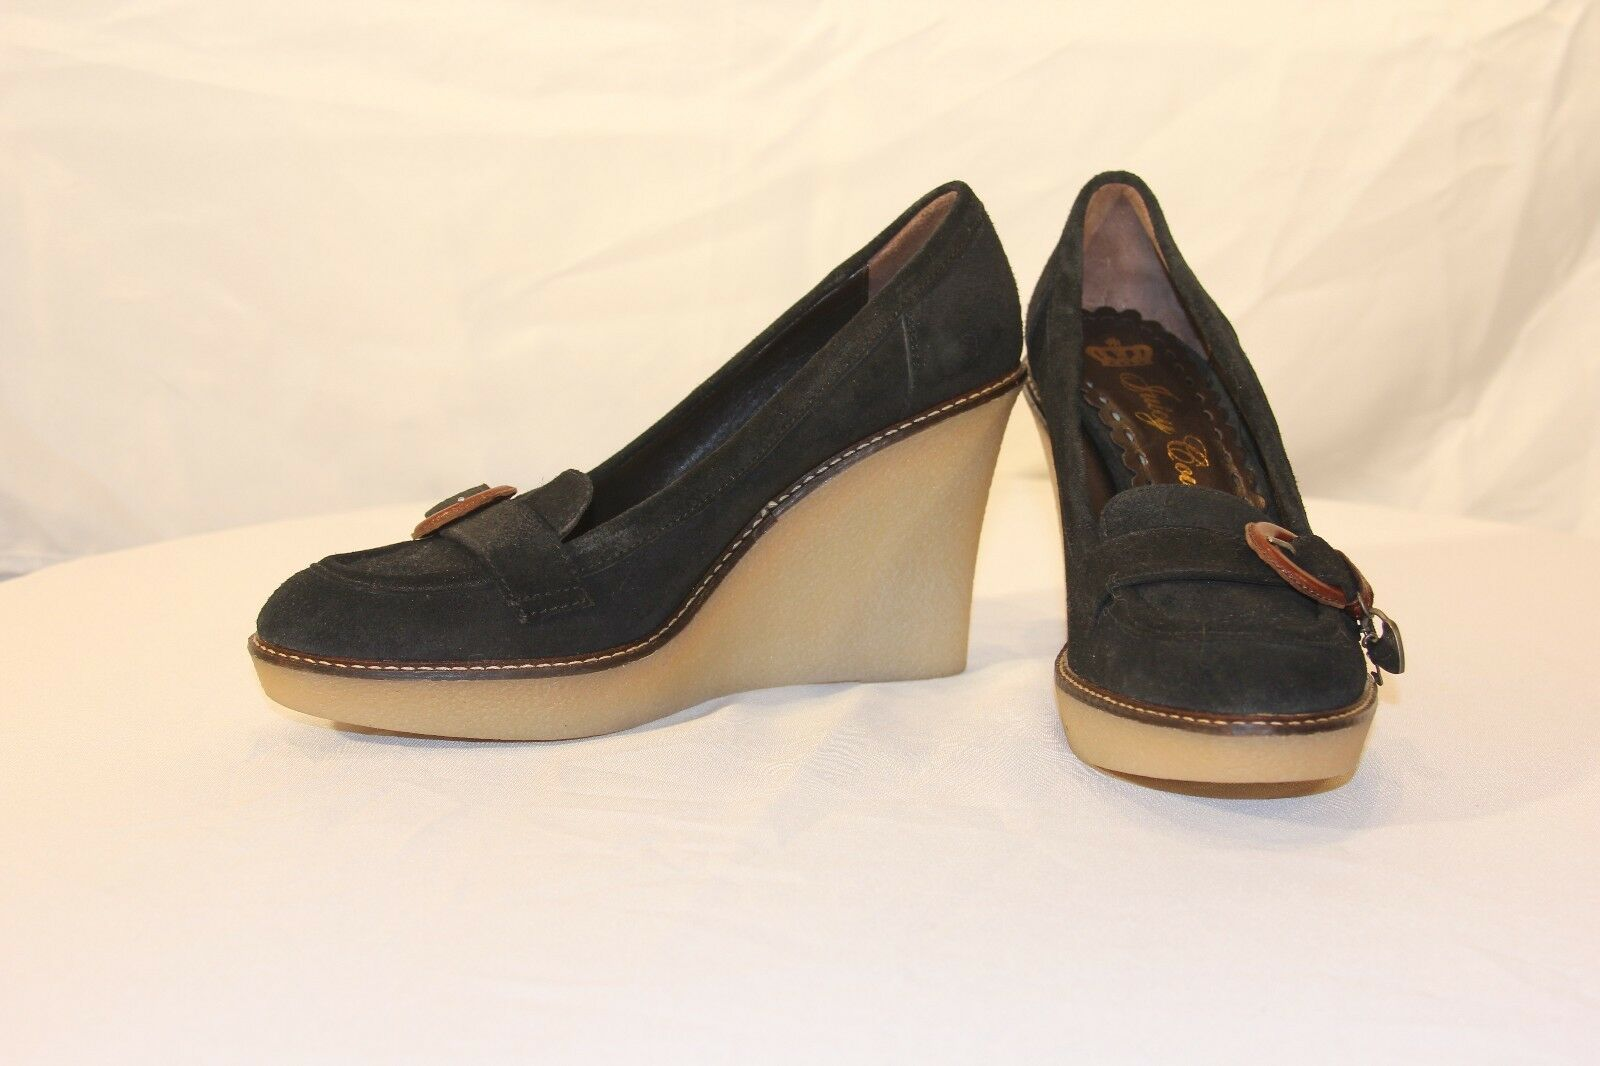 Juicy Couture Size 1/2 9 1/2 Size Black Leather Suede Charms Wedge Heels Pumps Shoes 9bdc47